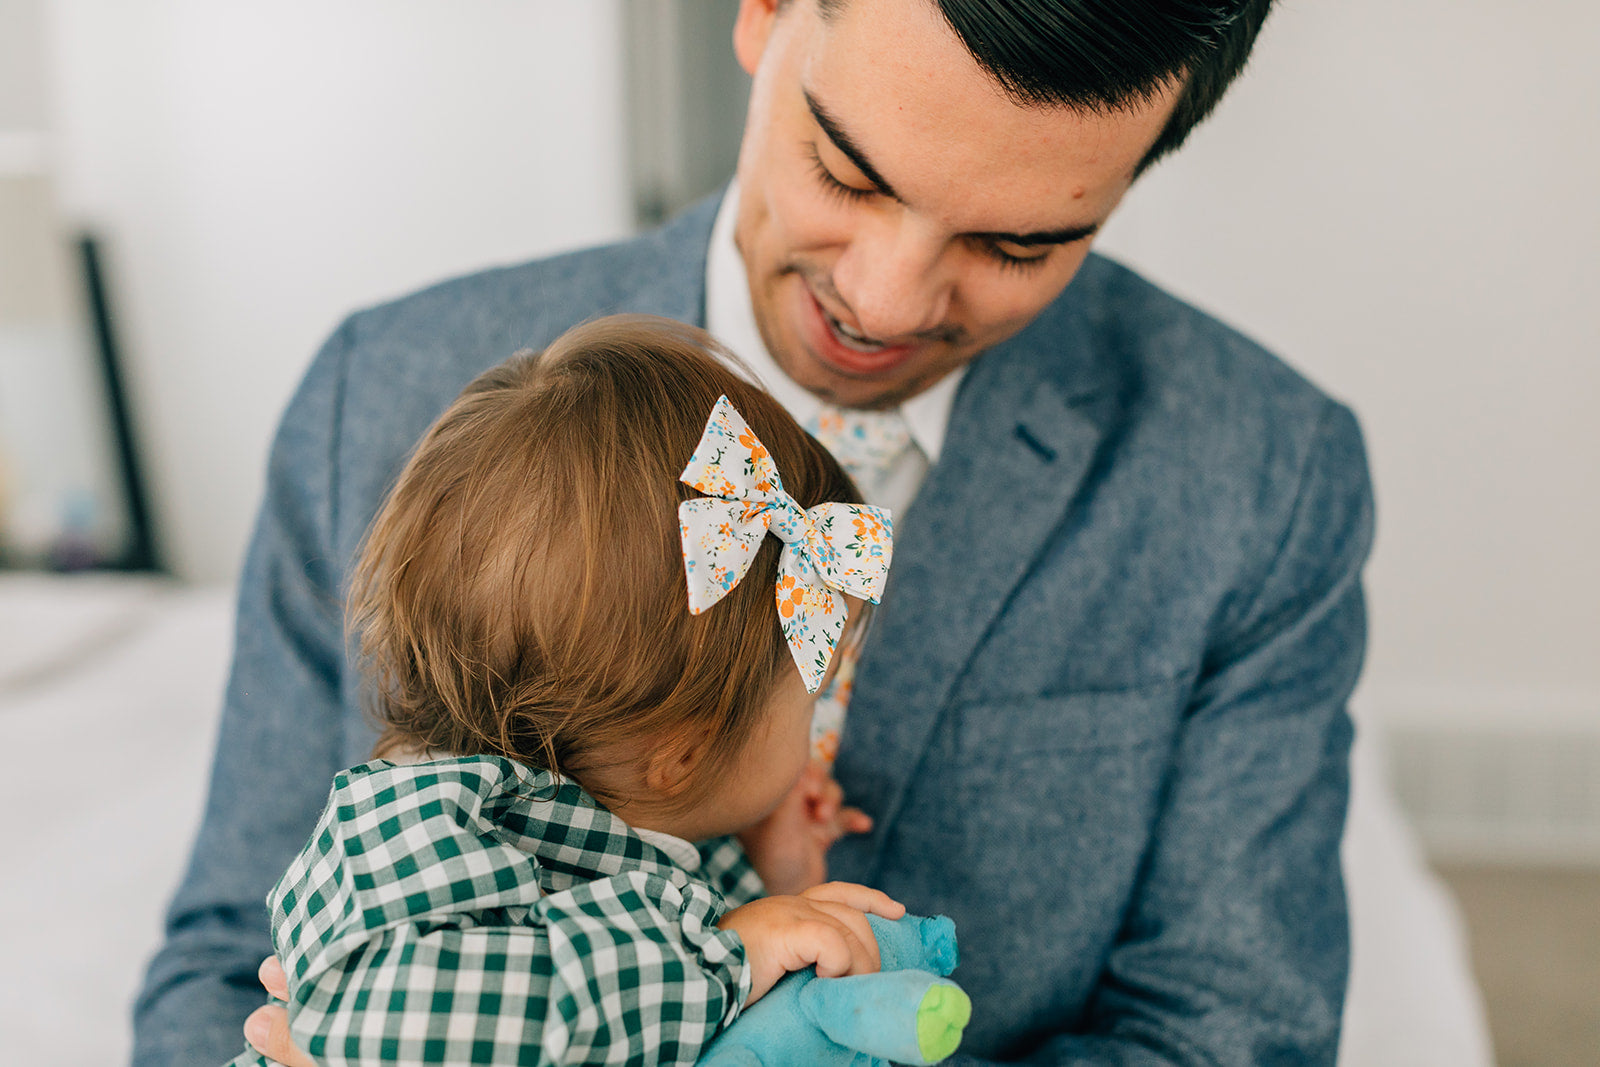 Baby hair bow, orange and blue floral, alligator clip, daughter and father matching hair bow and tie, Green gingham dress